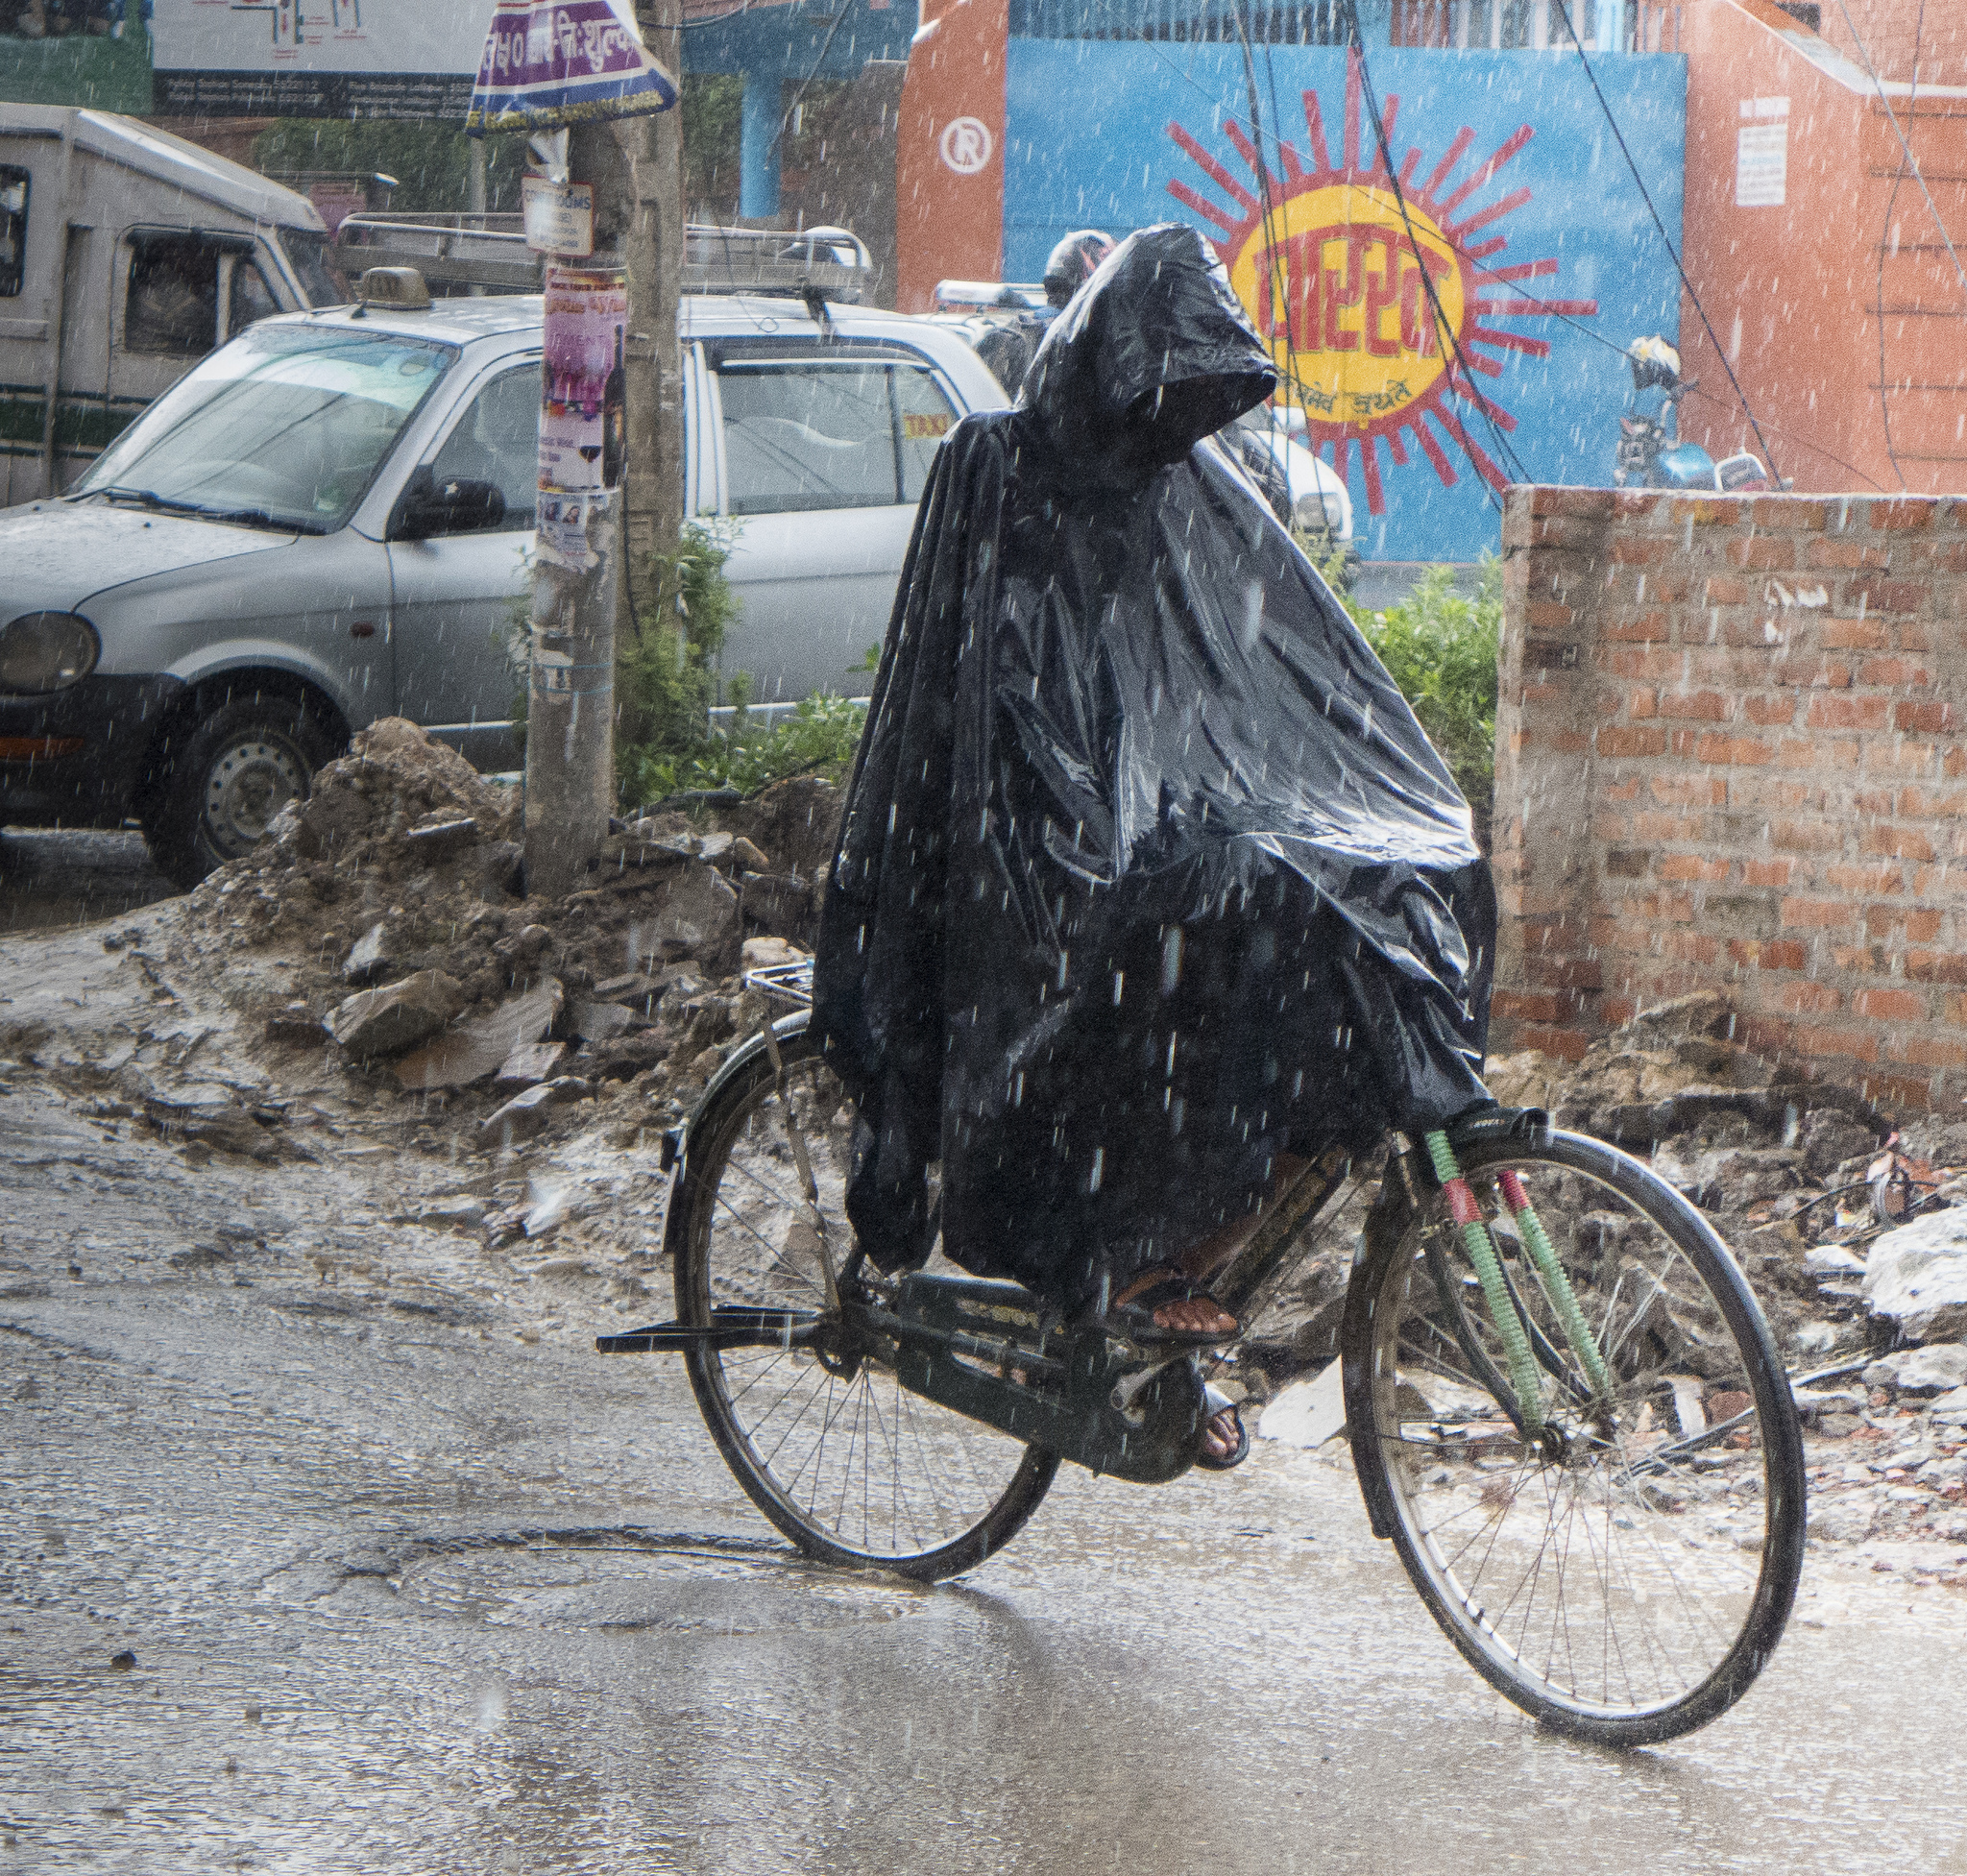 Monsoon season arrives, carrying new threat